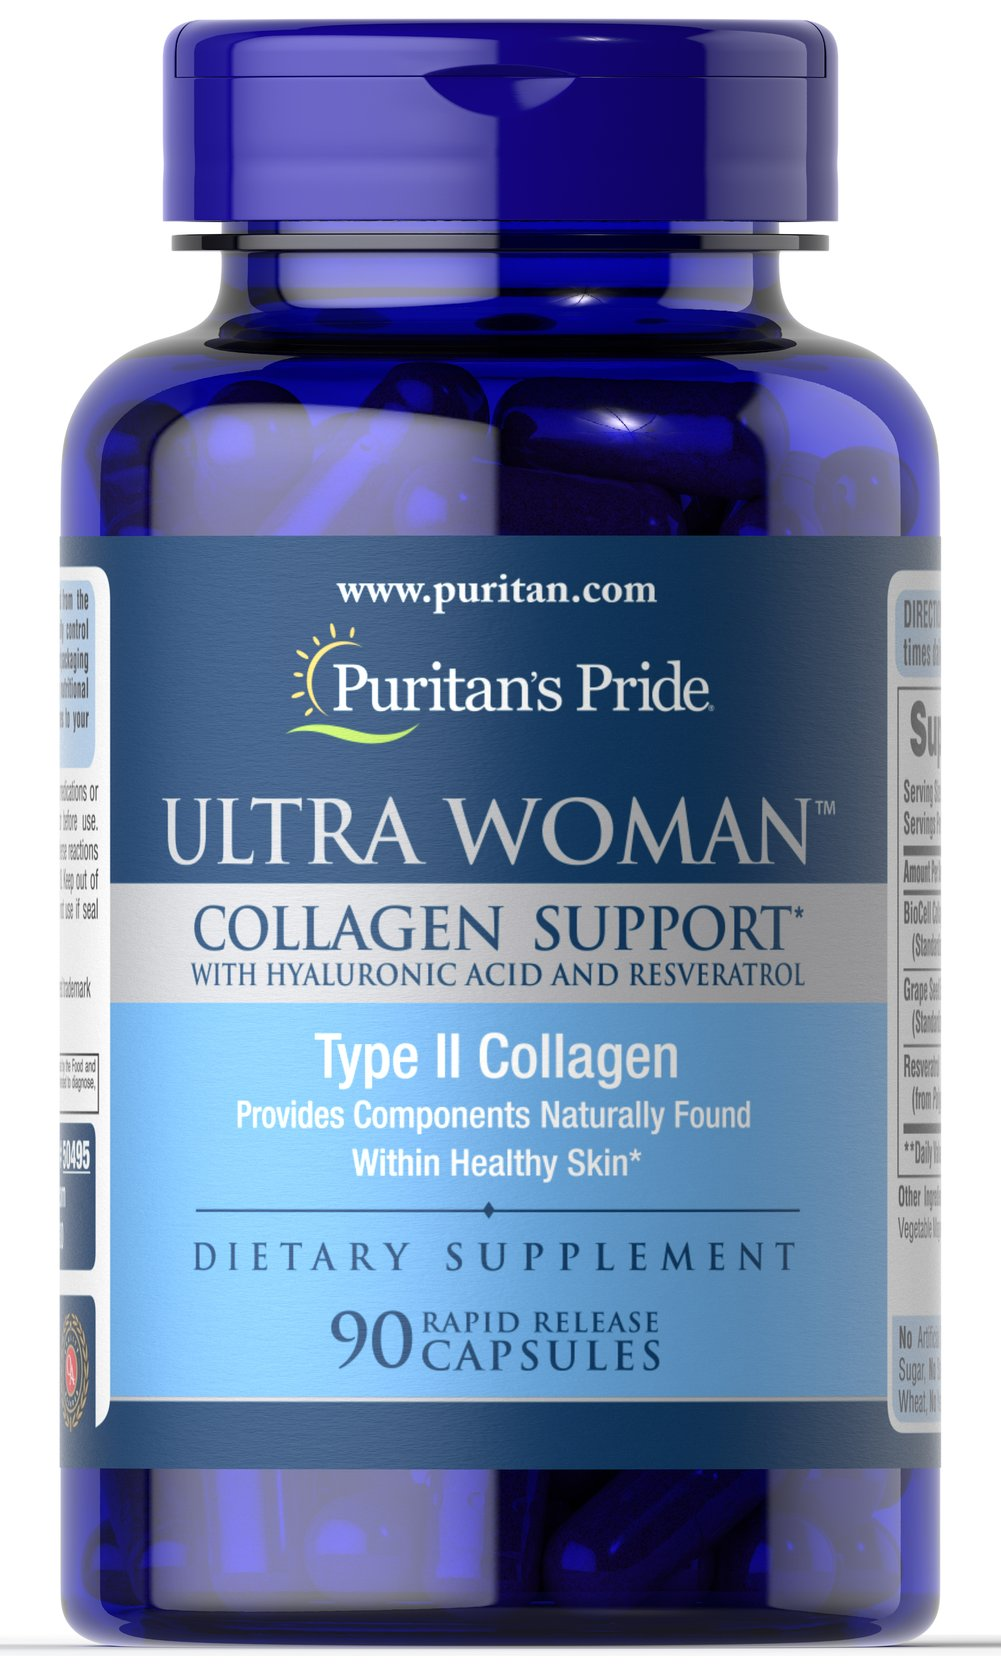 Ultra Woman™ Collagen Support <p><span></span>Standardized to contain 10% Hyaluronic Acid.</p> <p><span></span>Also includes Resveratrol for antioxidant support.**</p> <p><span></span>Rapid release capsules.</p> <p>Ultra Woman™ Collagen Support is a dietary supplement that is made up of a complex of nutrients. Each serving includes 1,000mg of BioCell Collagen II® which is standardized to contain 10% Hyaluronic Aci